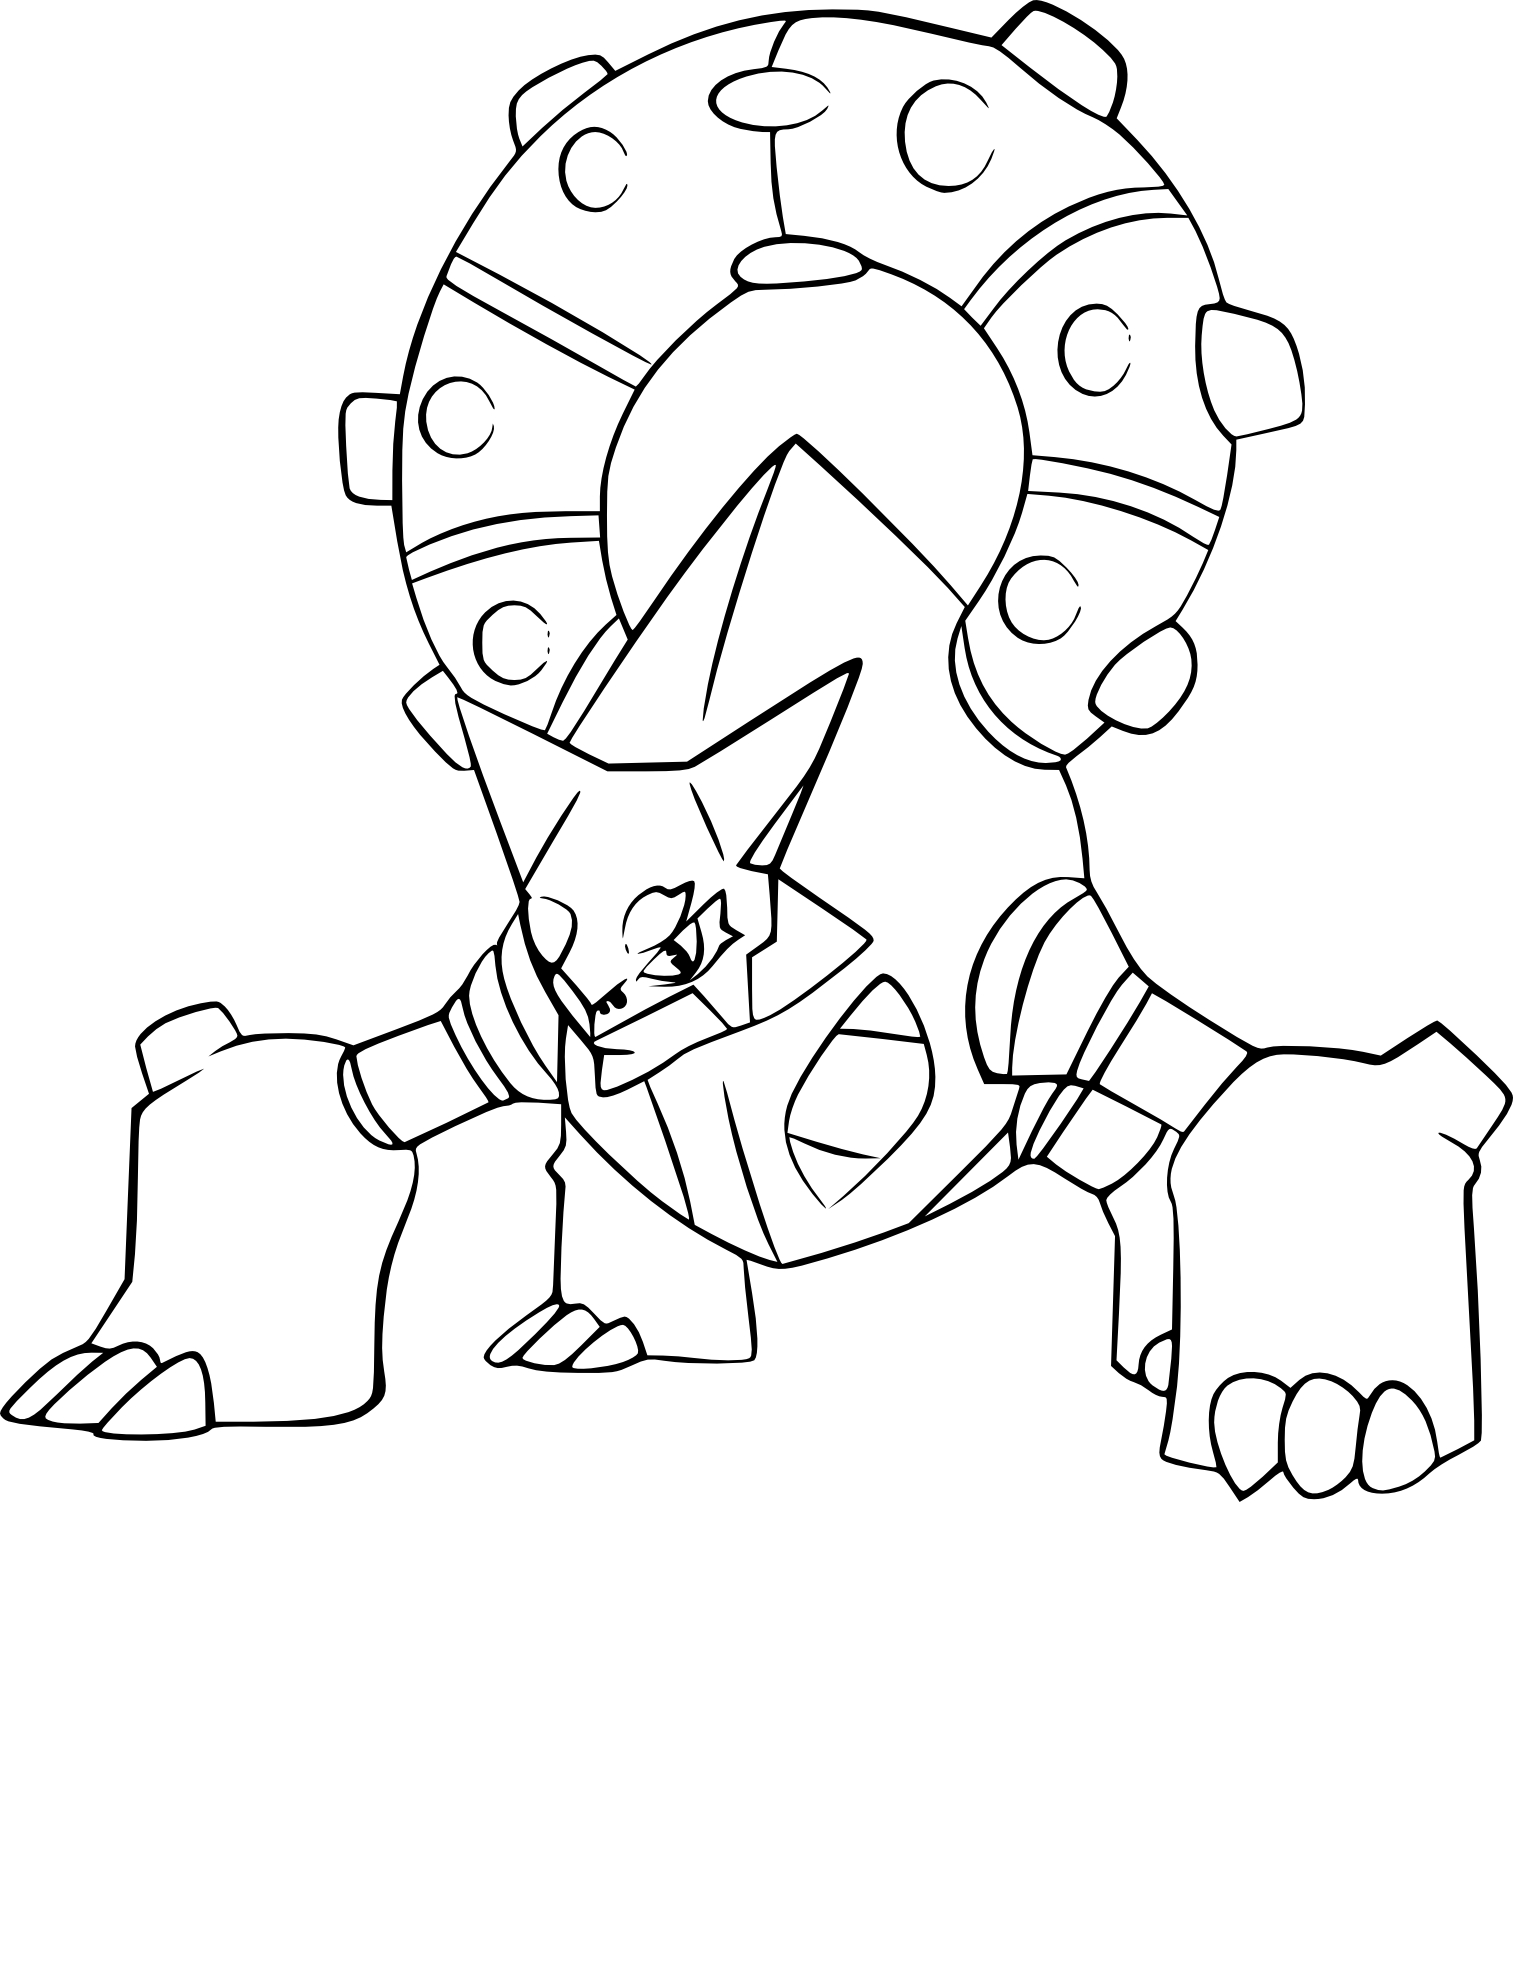 Coloriage Volcanion Pokemon à Imprimer